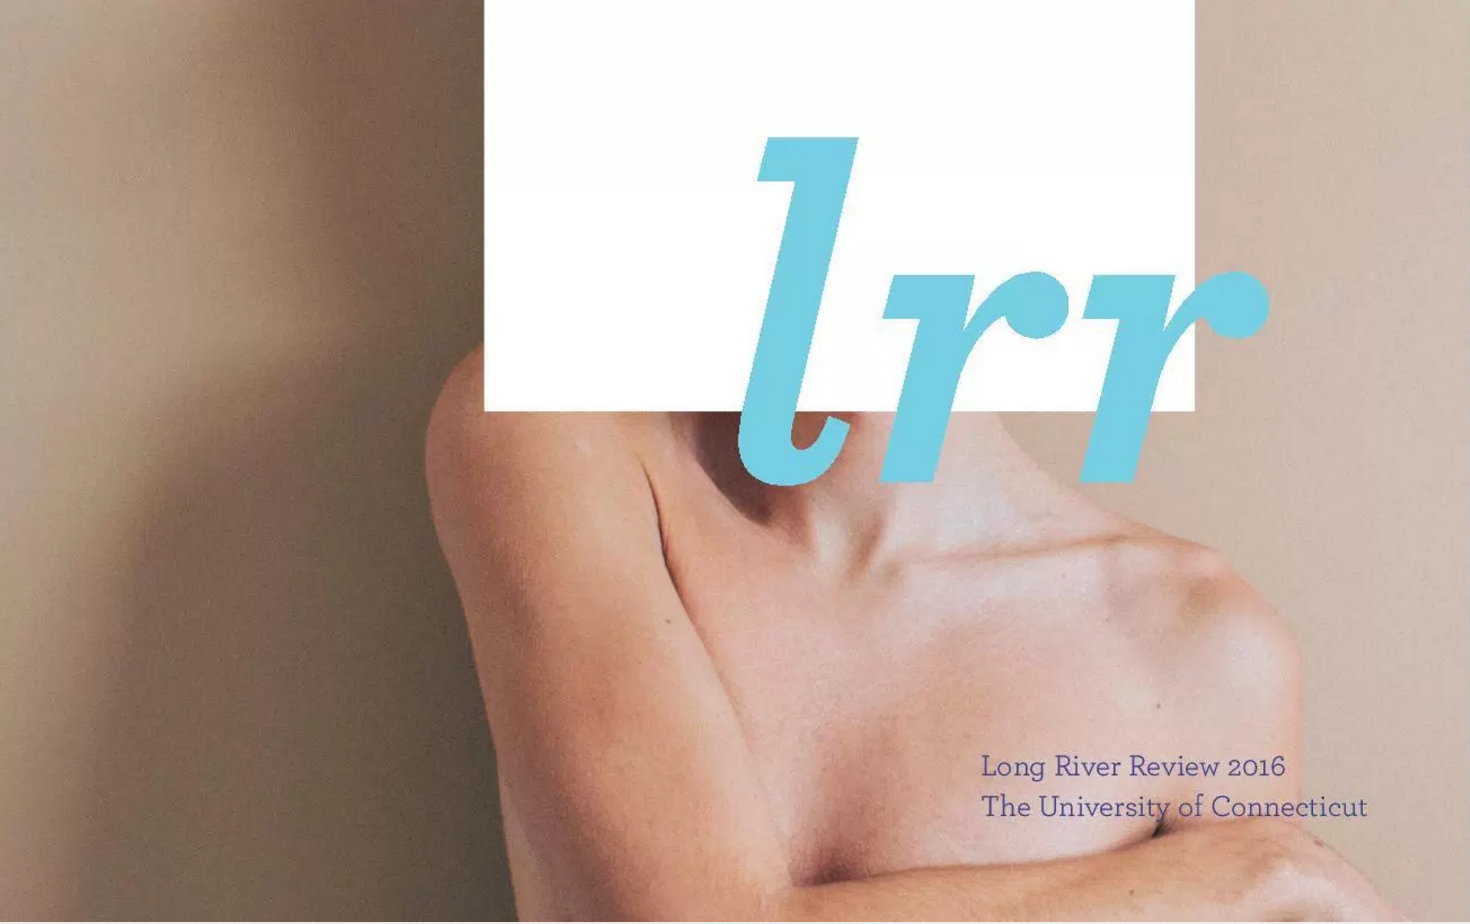 The Long River Review is hosting its launch party Thursday. (Photo/ Long River Review )